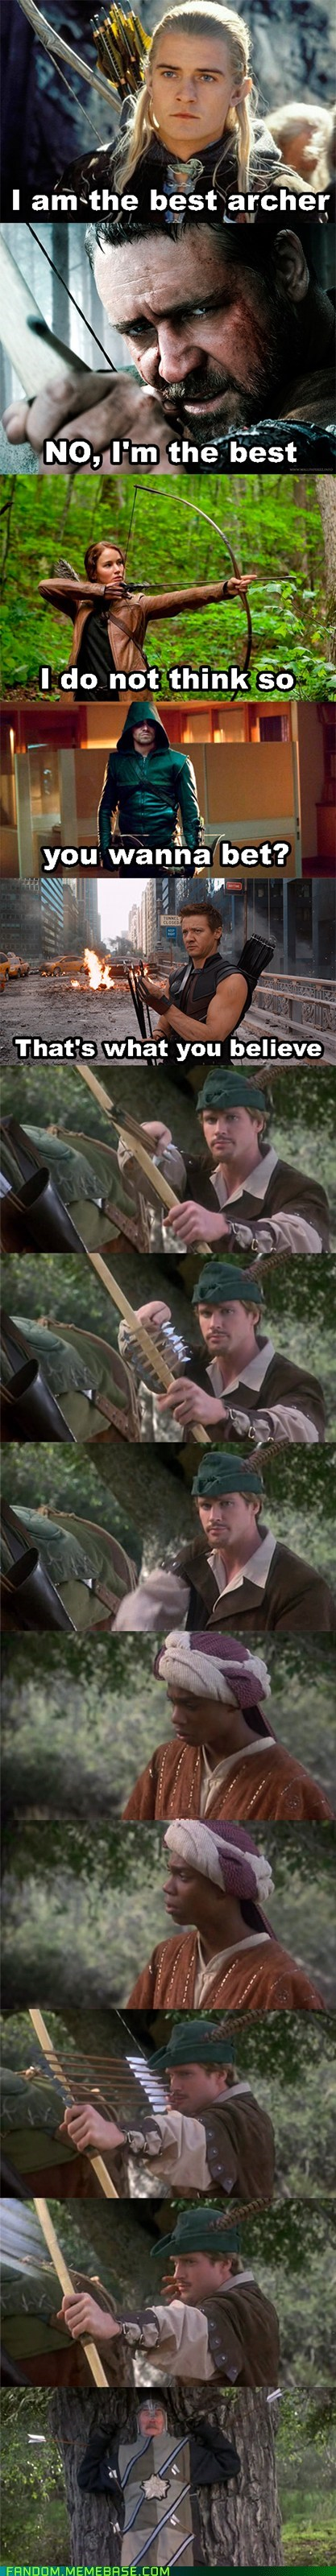 robin hood men in tights movies archers - 7527262720